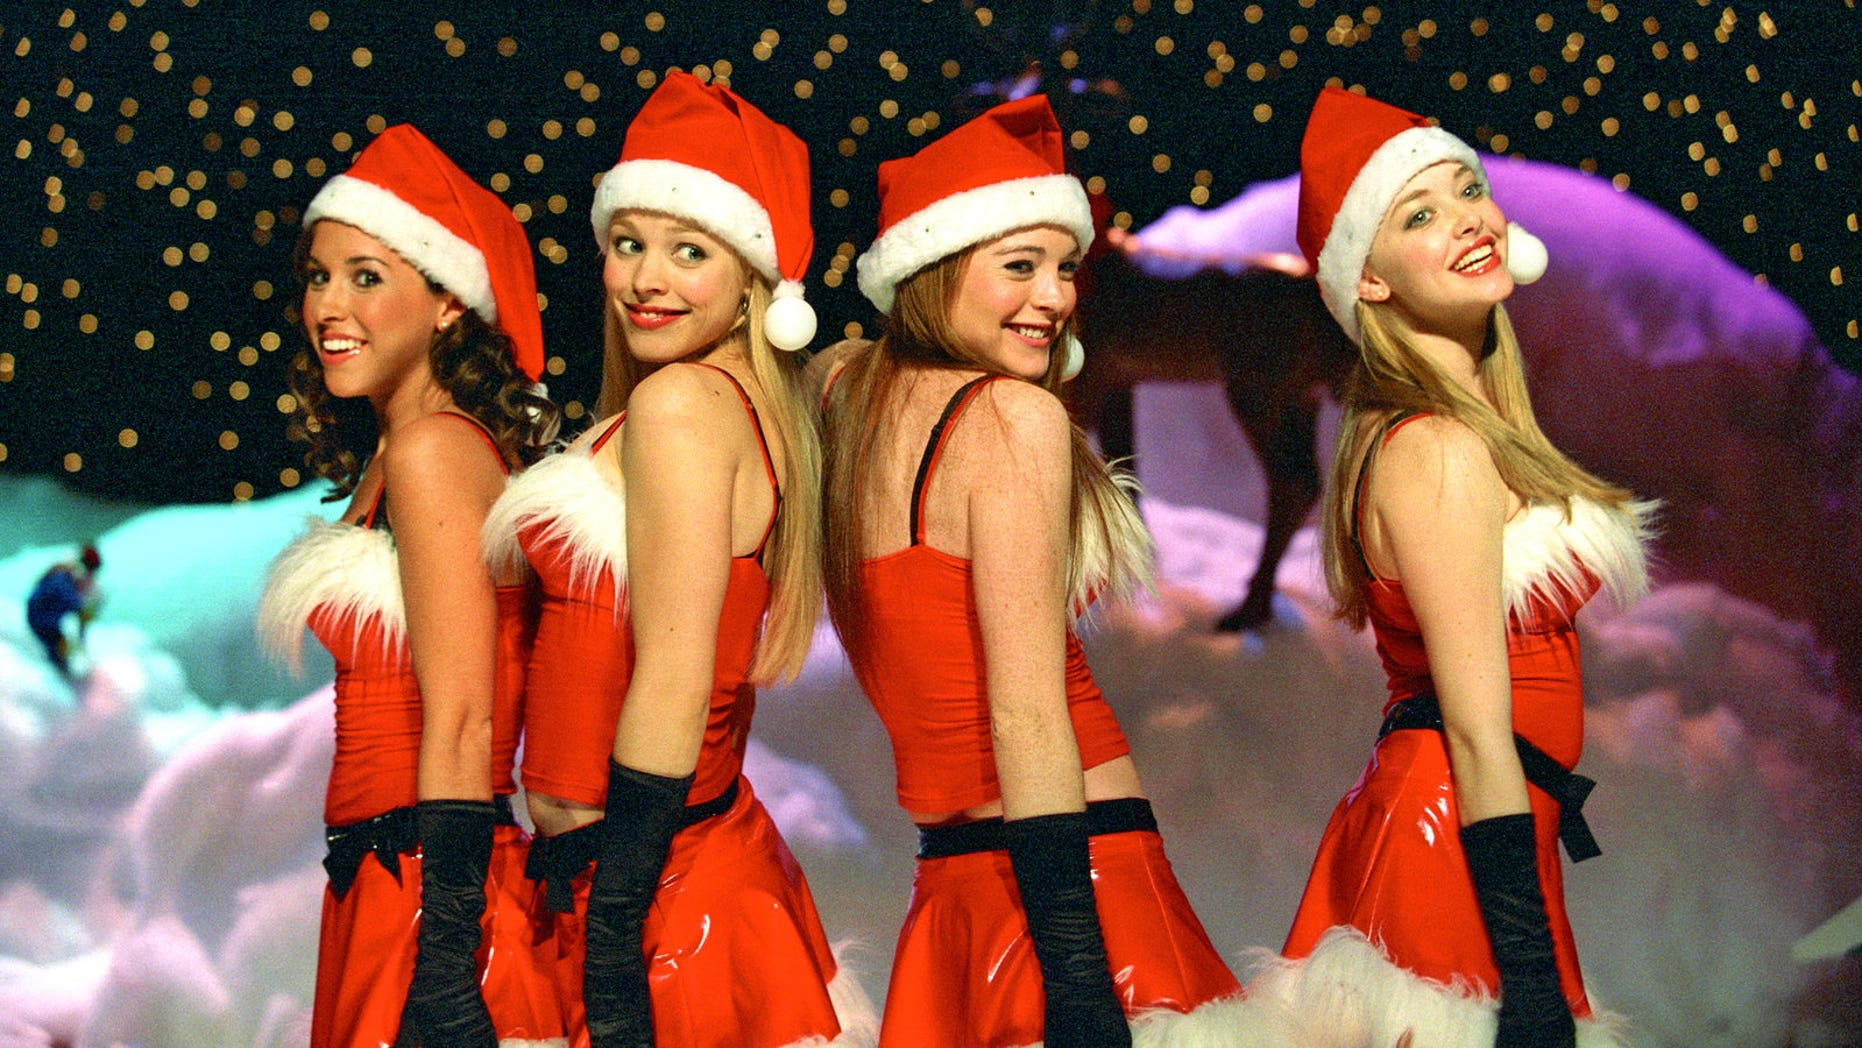 The parents dubbed the group who targeted the boy with false sexual assault allegations 'mean girls', referencing the 2004 movie starring Lindsay Lohan [second from right)